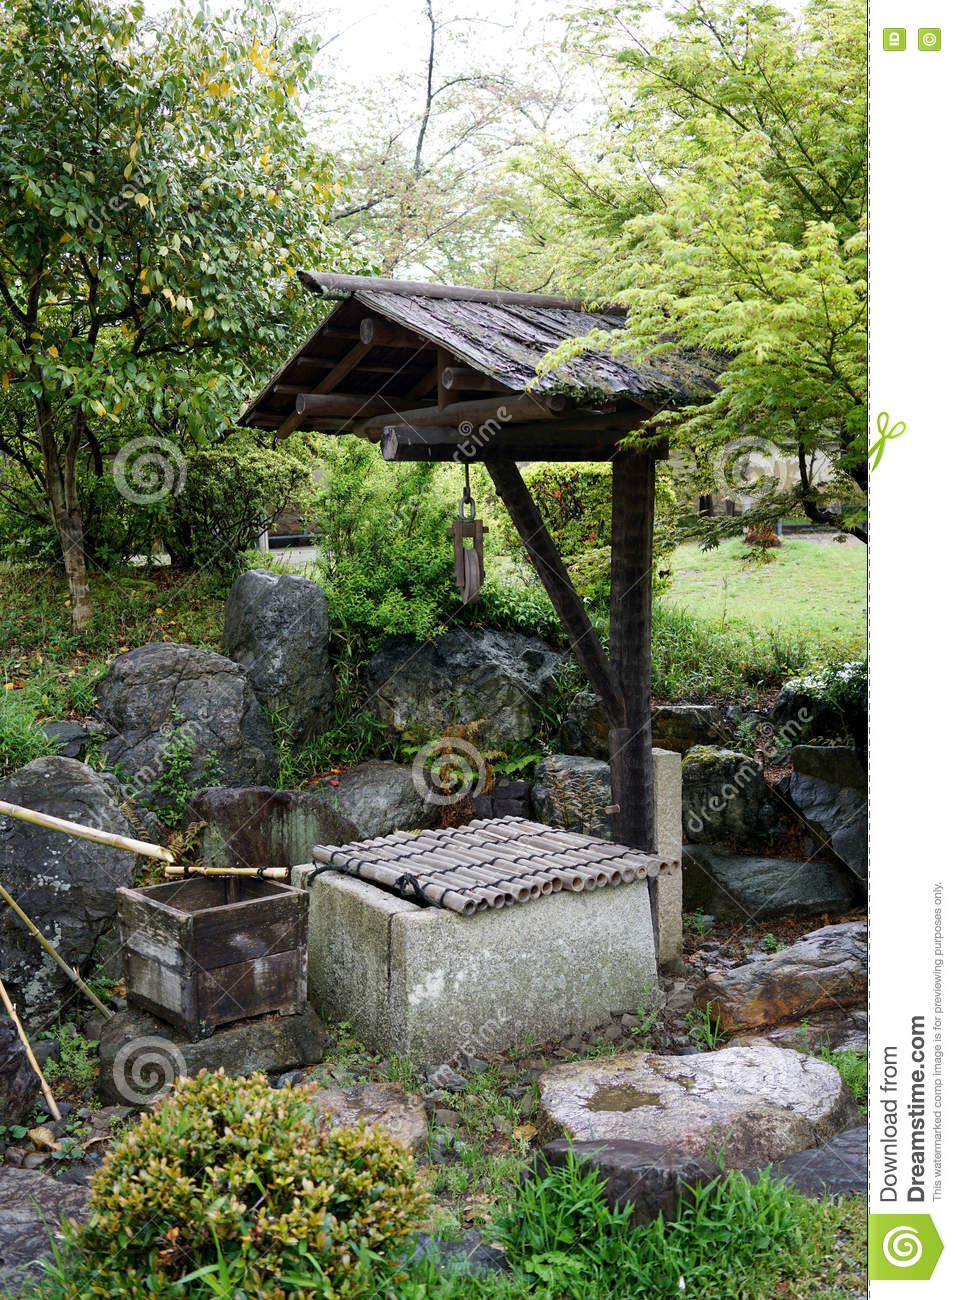 Ancient Stone Well In Japanese Garden Stock Photo - Image of ...